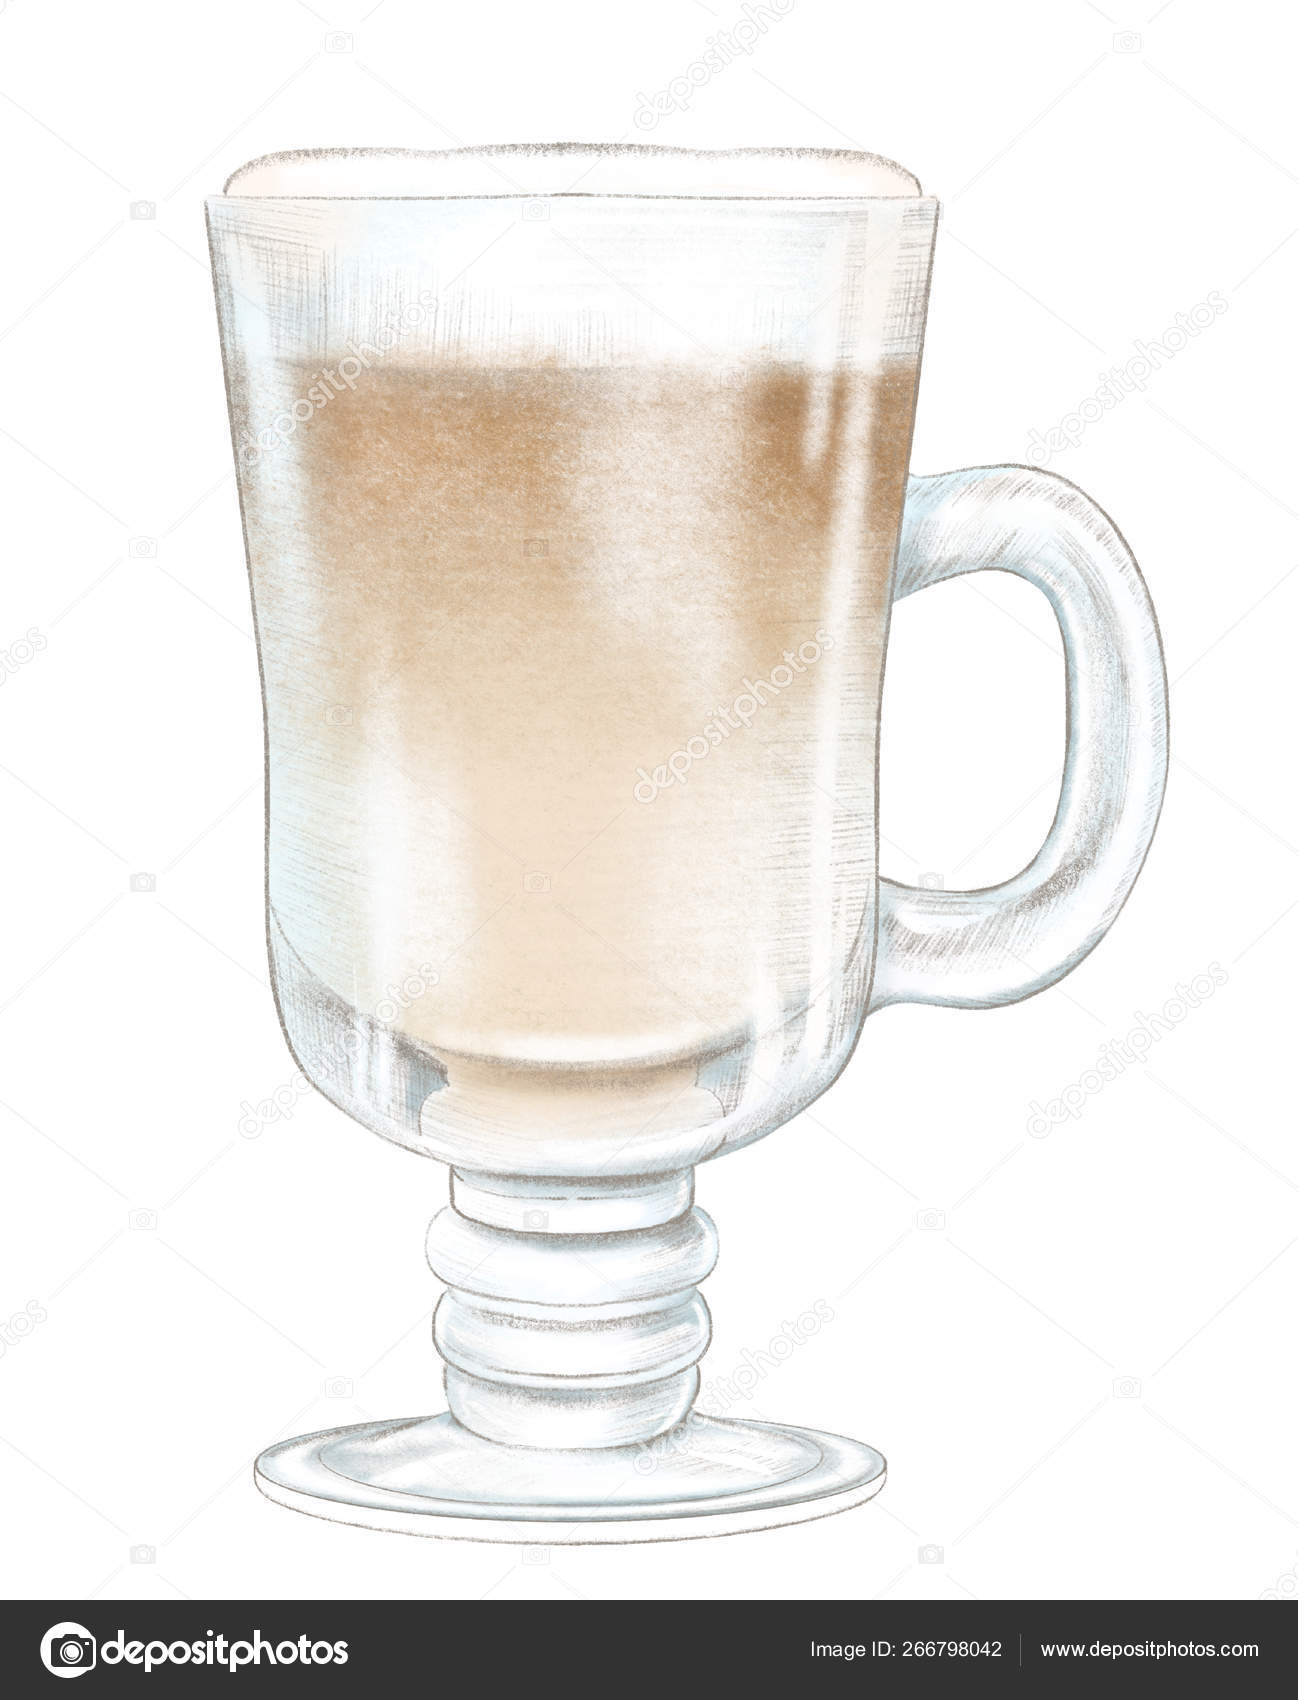 Pencil drawing with brown hot drink on glass cup stock photo